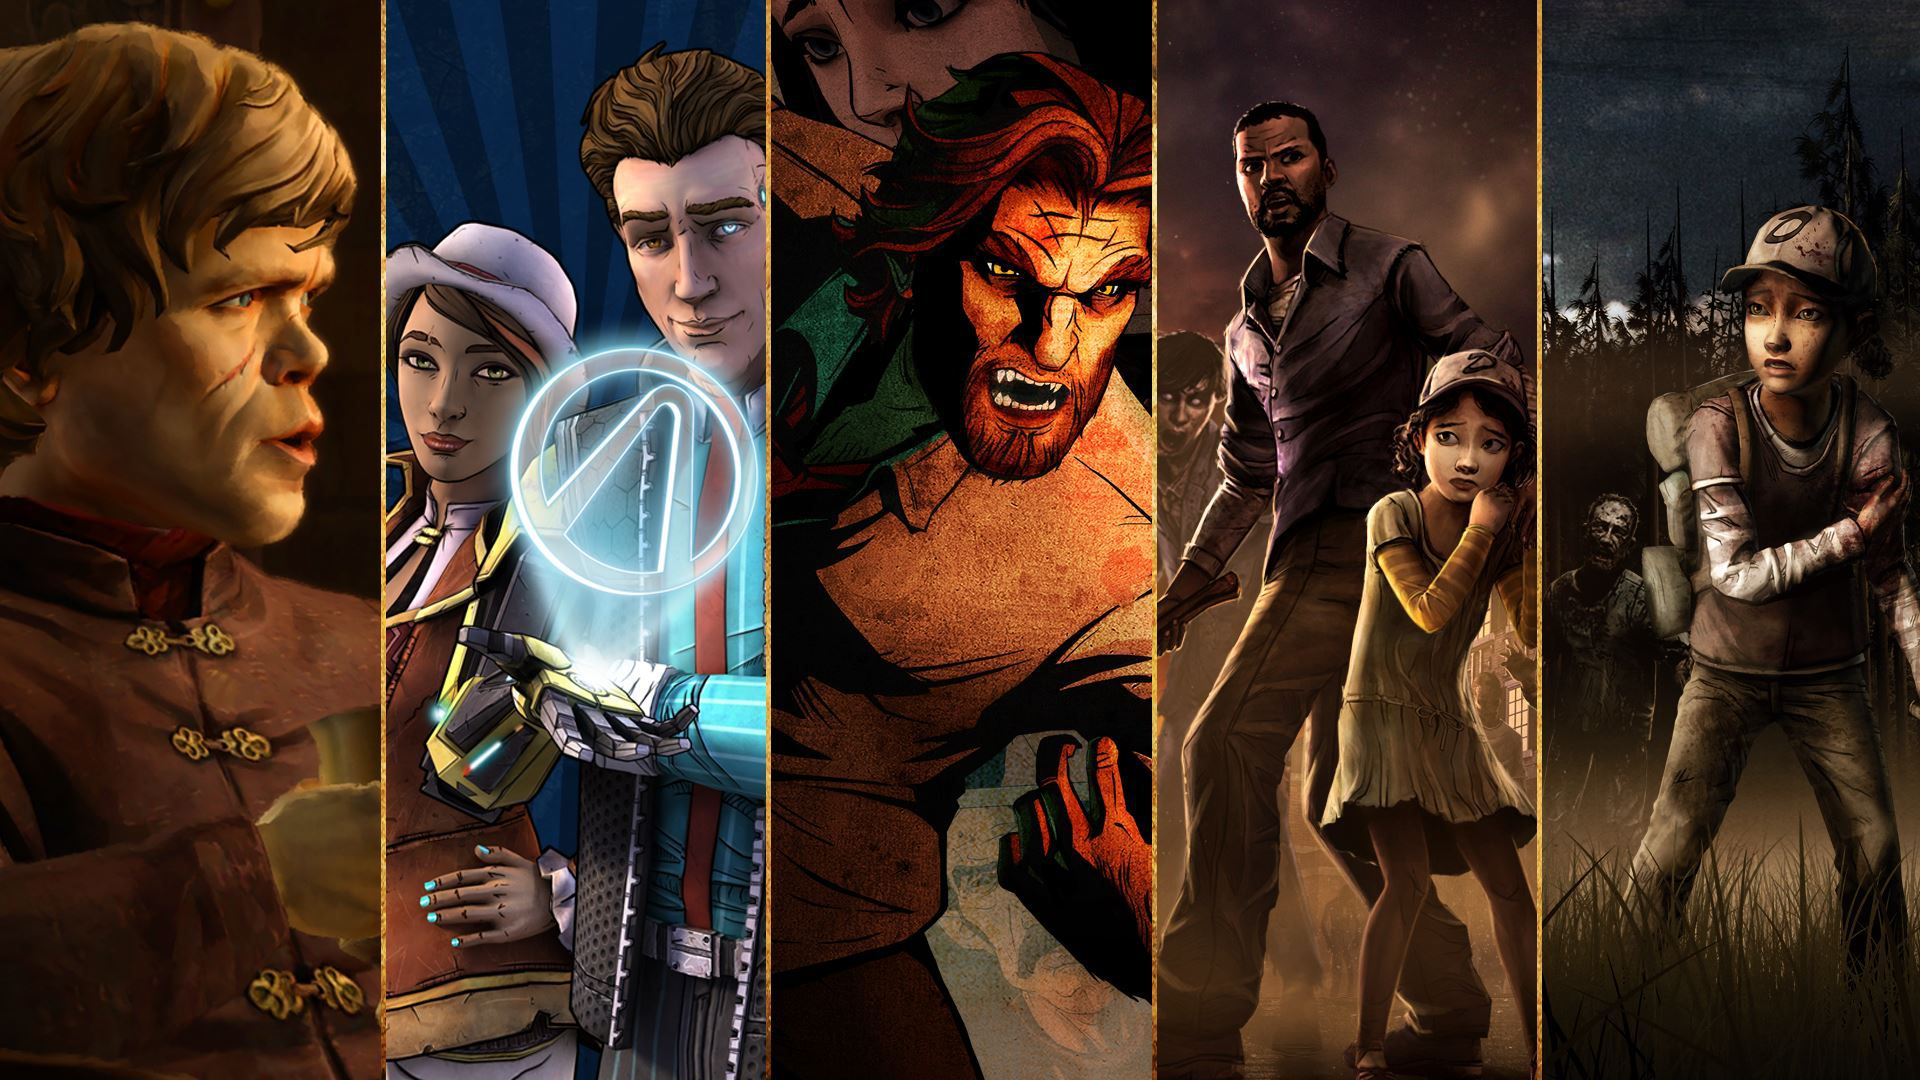 Telltale parla del futuro di The Wolf Among Us e Tales from the Borderlands